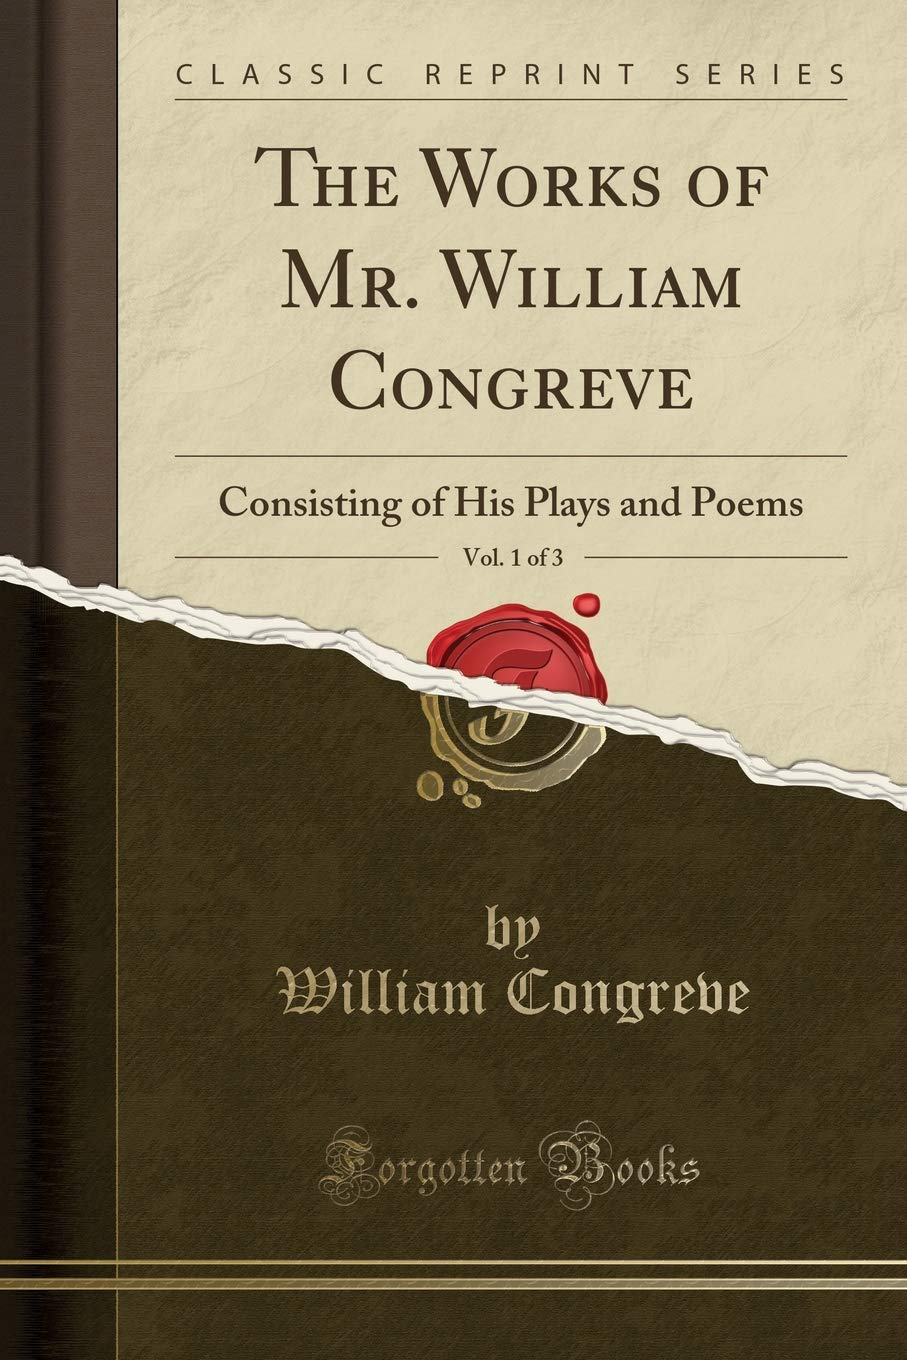 The Works of Mr. William Congreve, Vol. 1 of 3: Consisting of His Plays and Poems (Classic Reprint) ebook